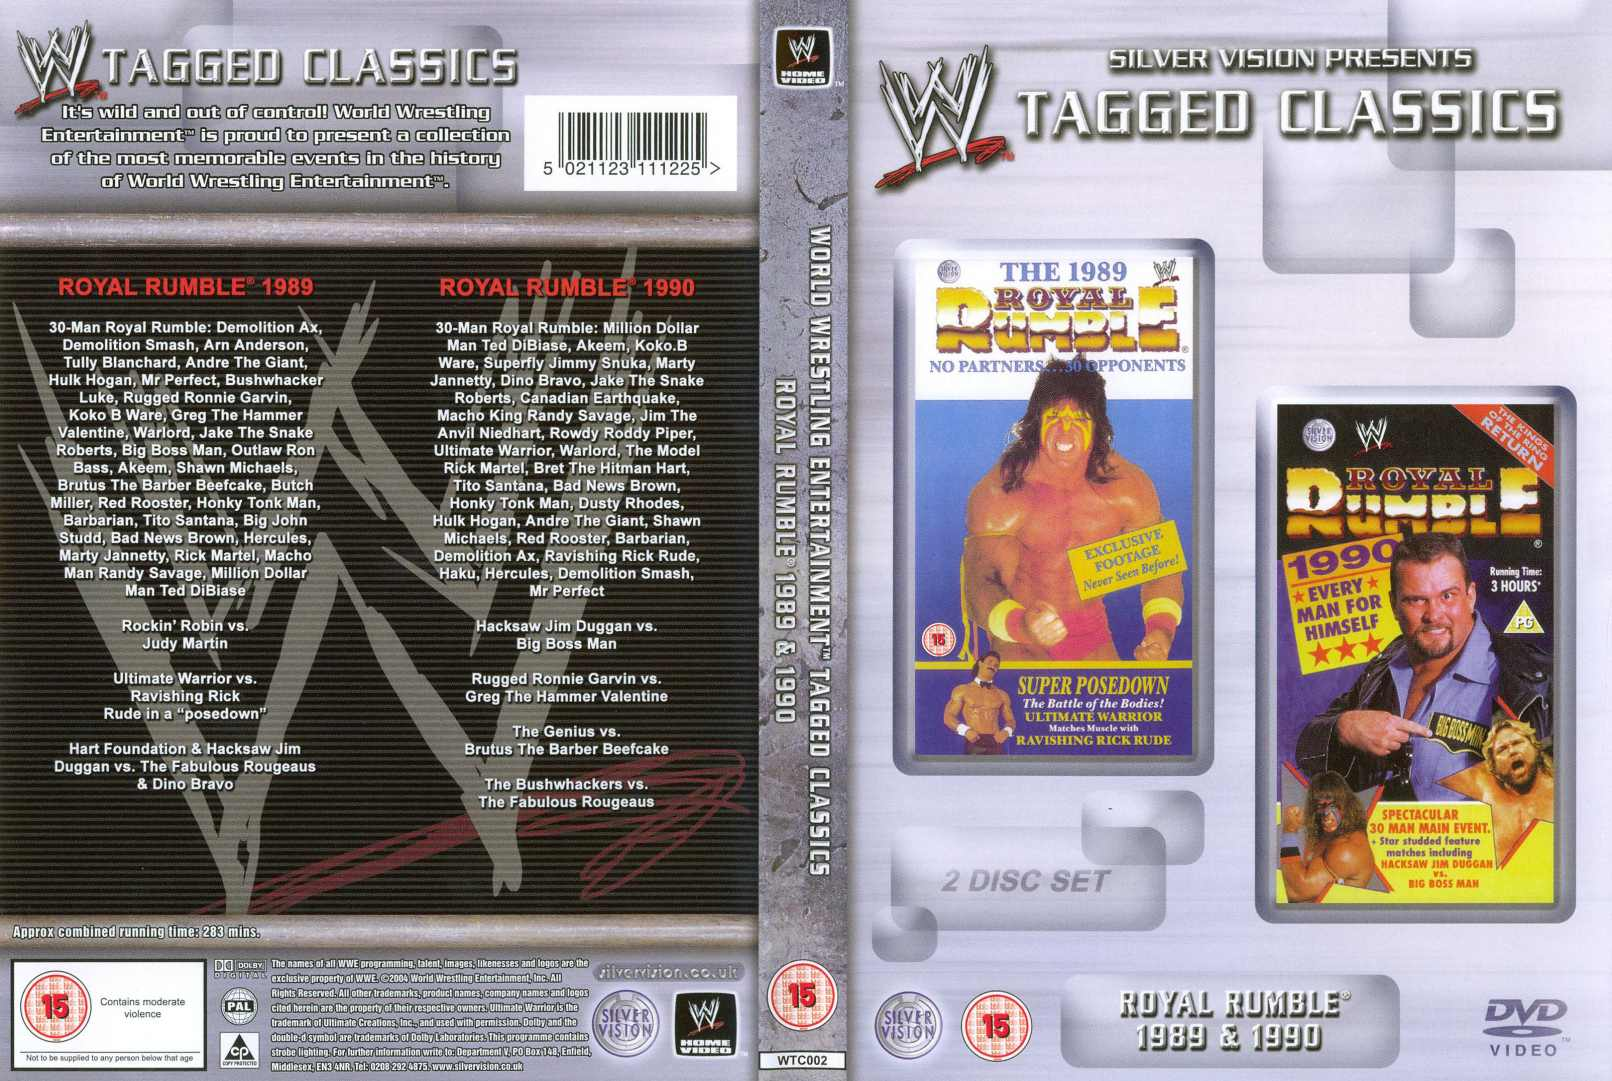 wwe_tagged_classics_-_royal_rumble_1989_&_1990